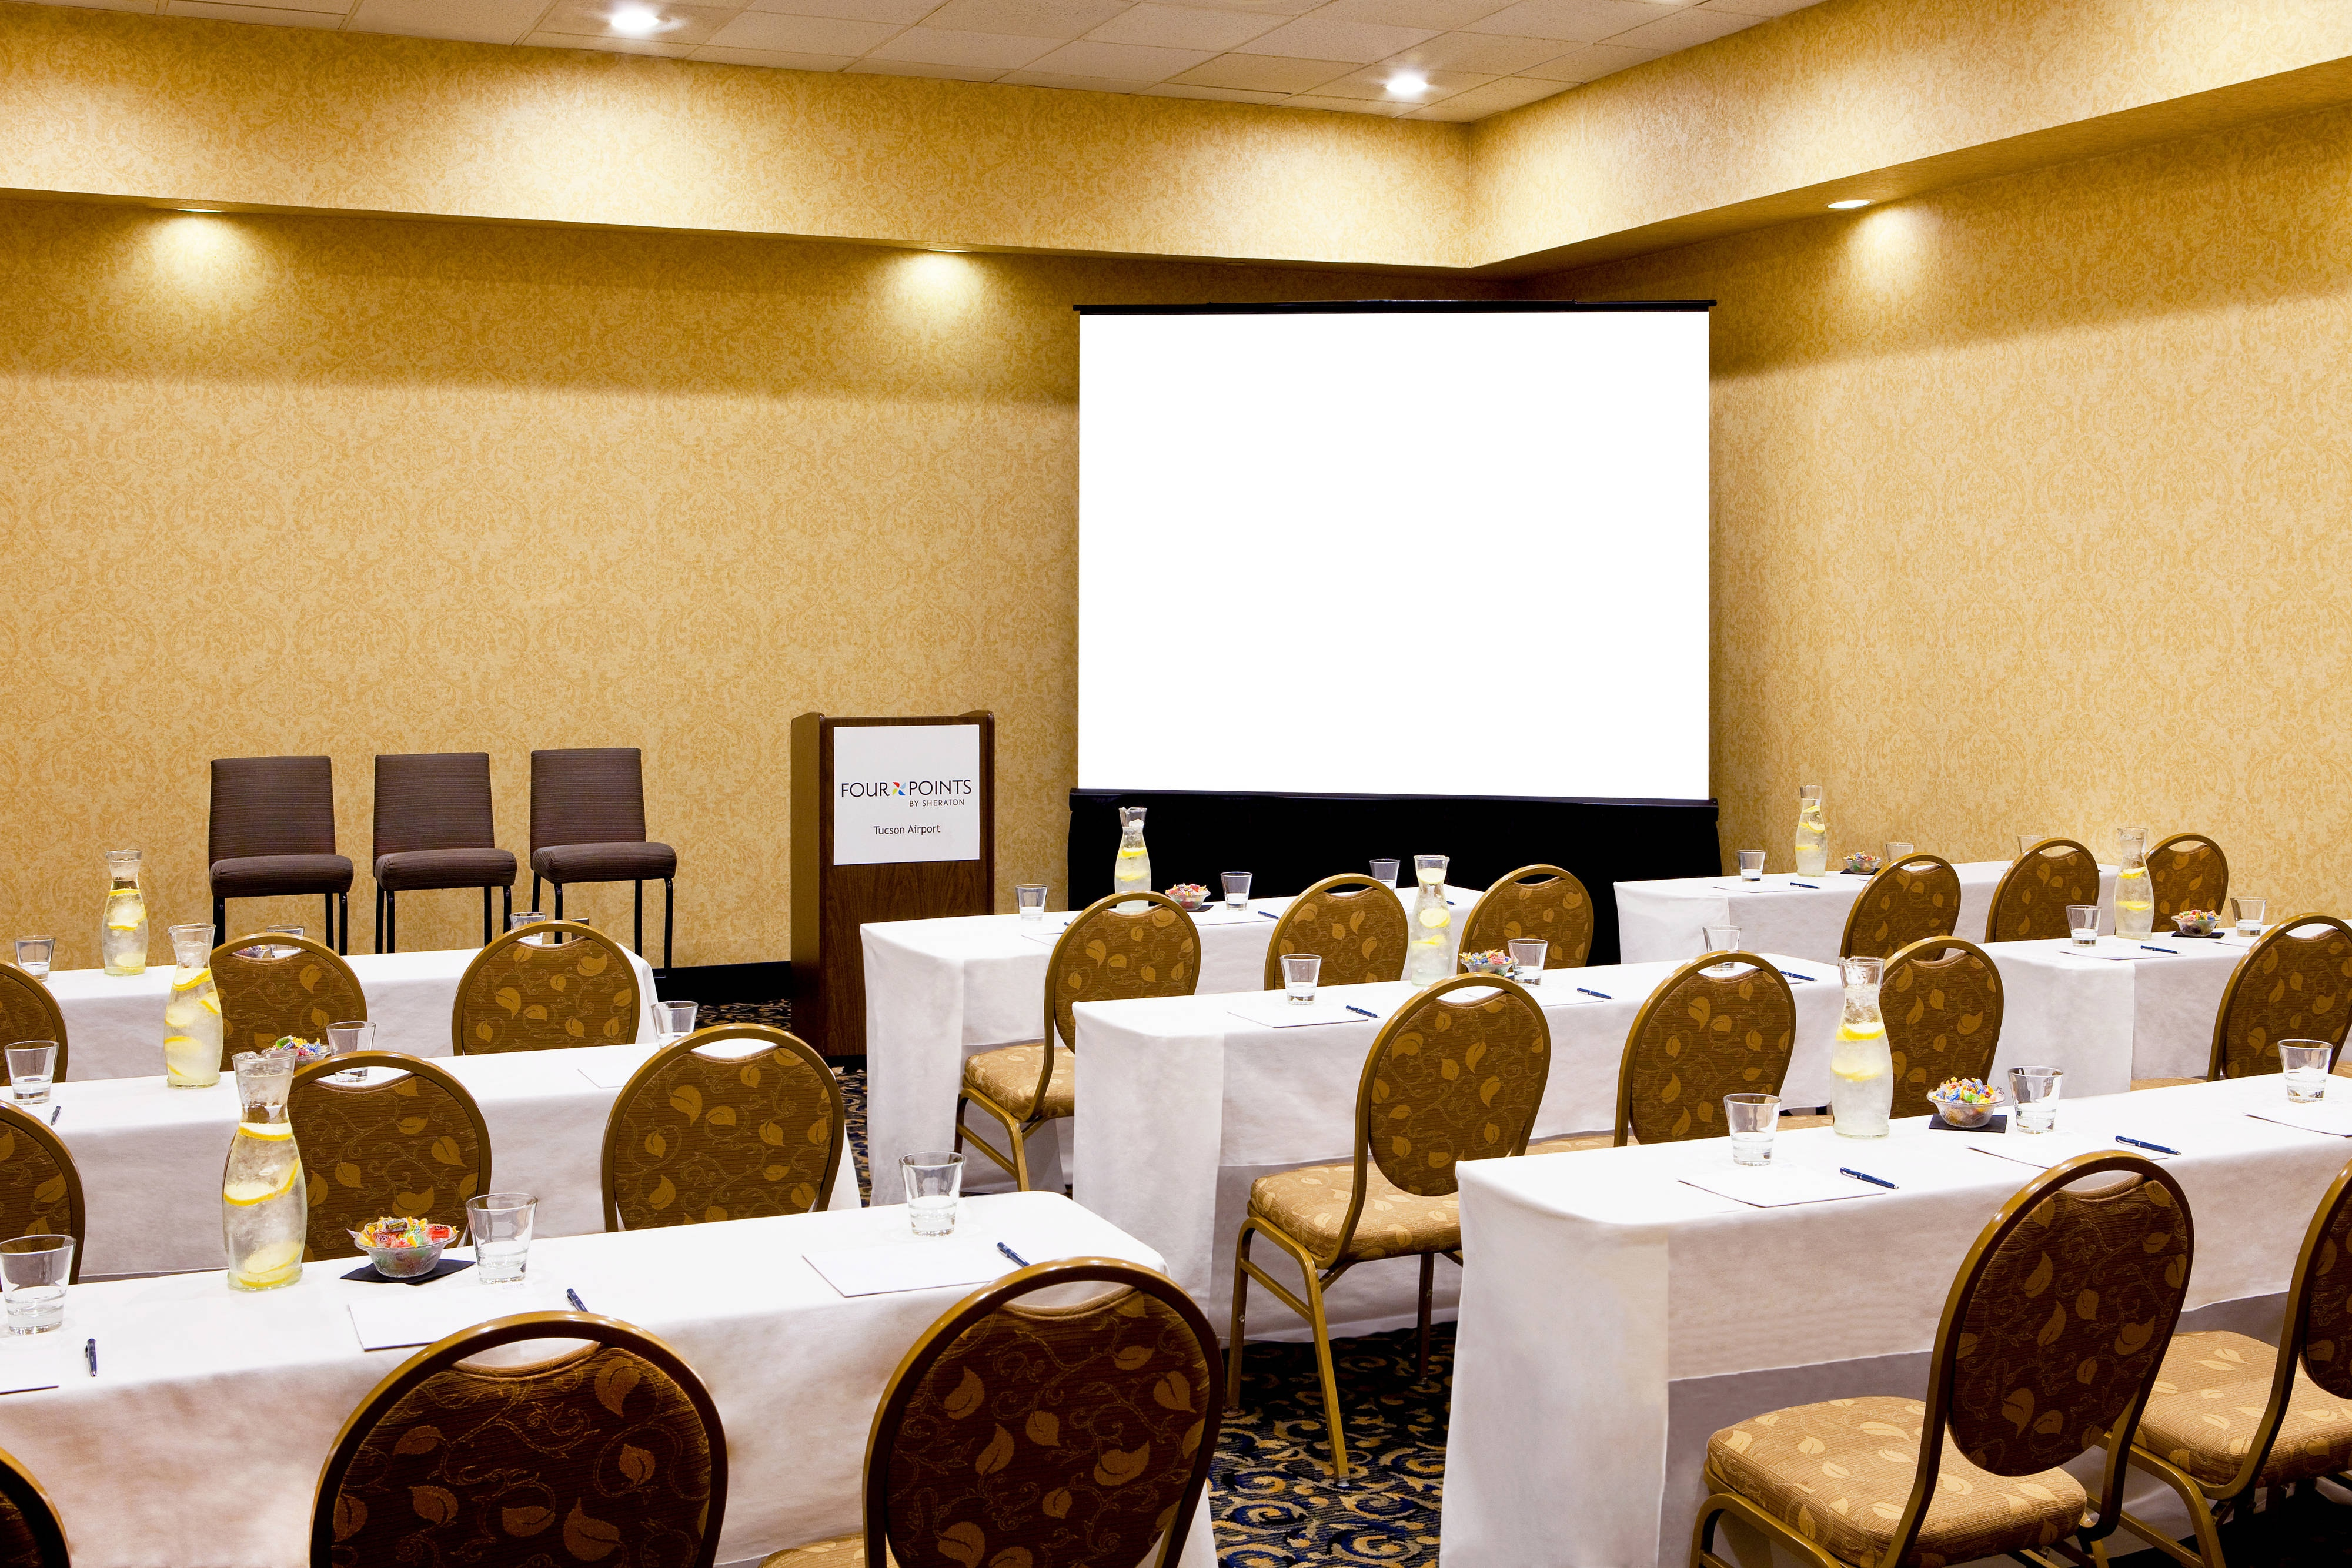 Corporate Meetings and presentations for up to 200